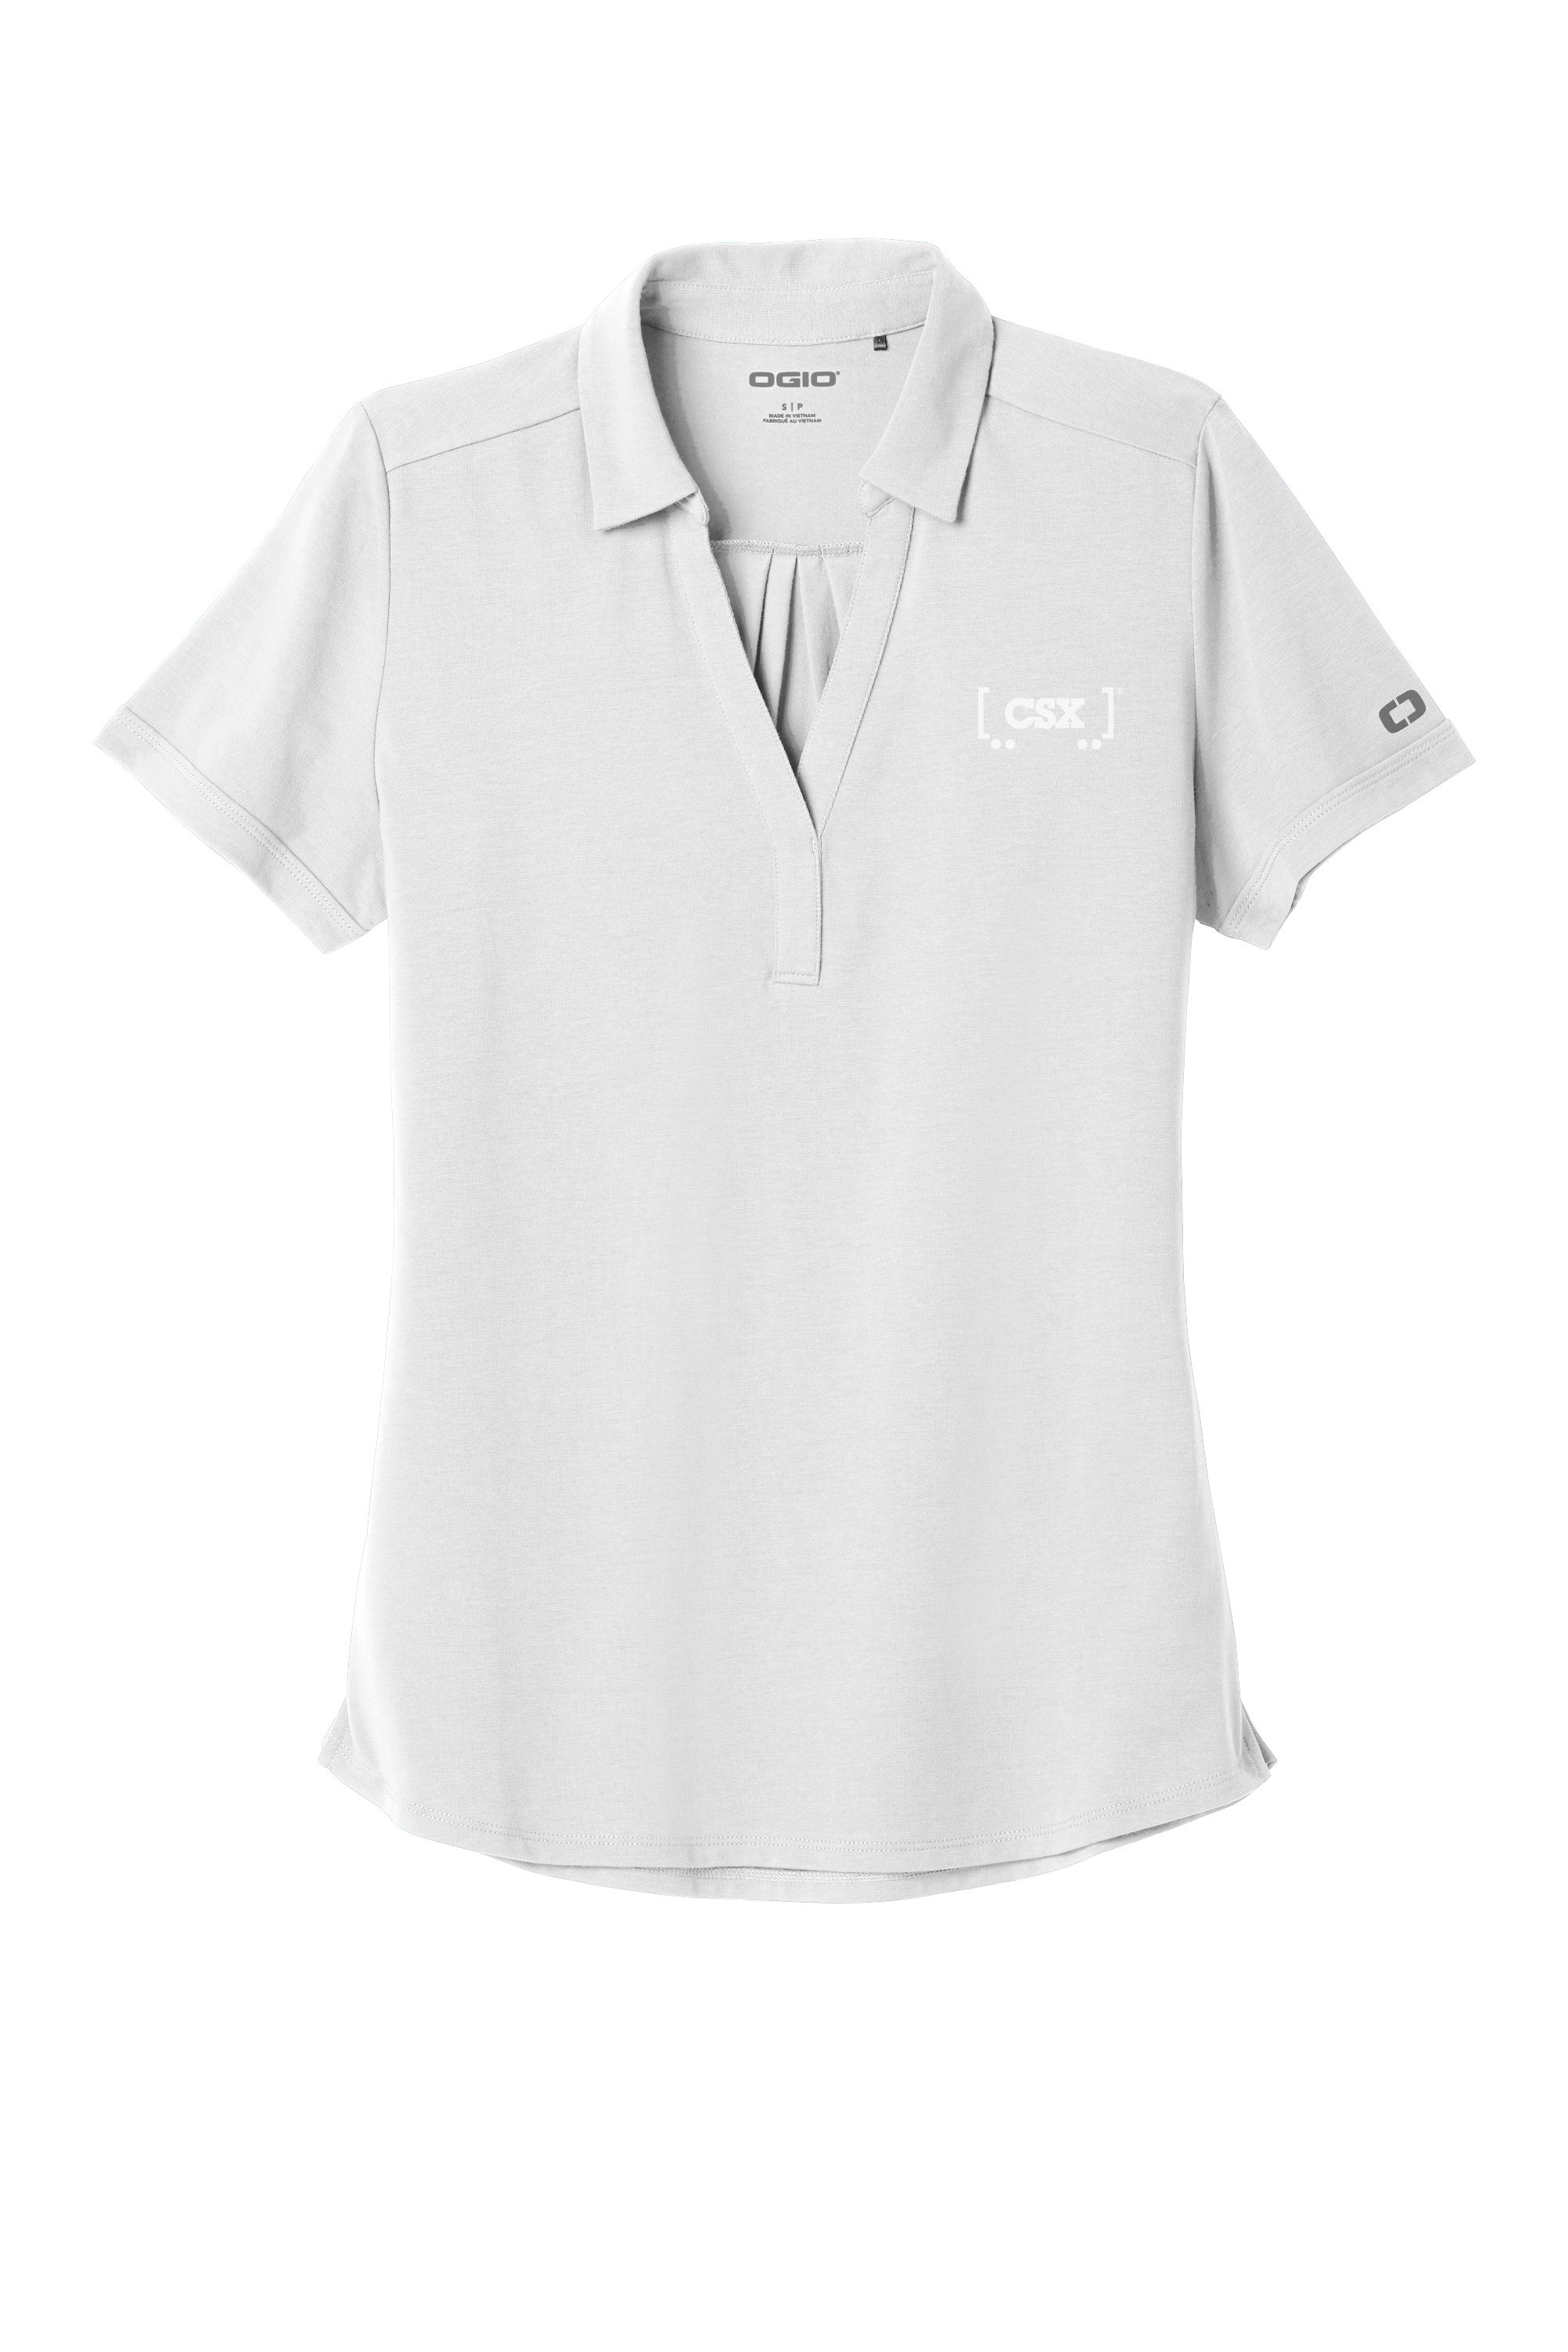 Ladies Ogio Polo Shirt